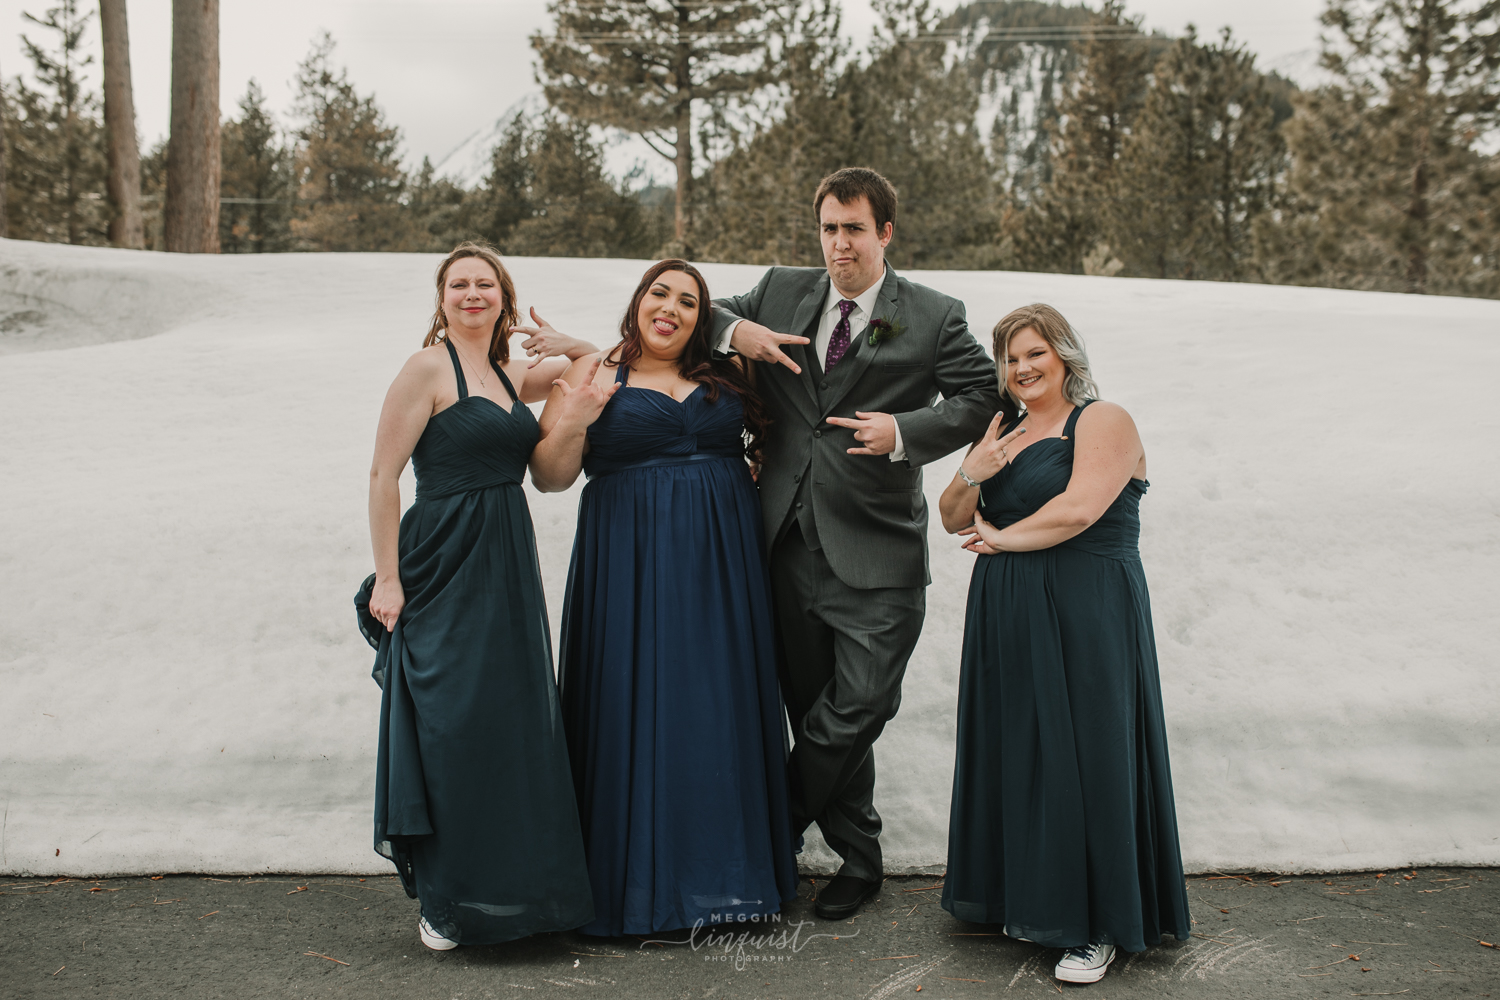 music-themed-winter-wedding-tannenbaum-event-center-reno-lake-tahoe-wedding-photographer-43.jpg